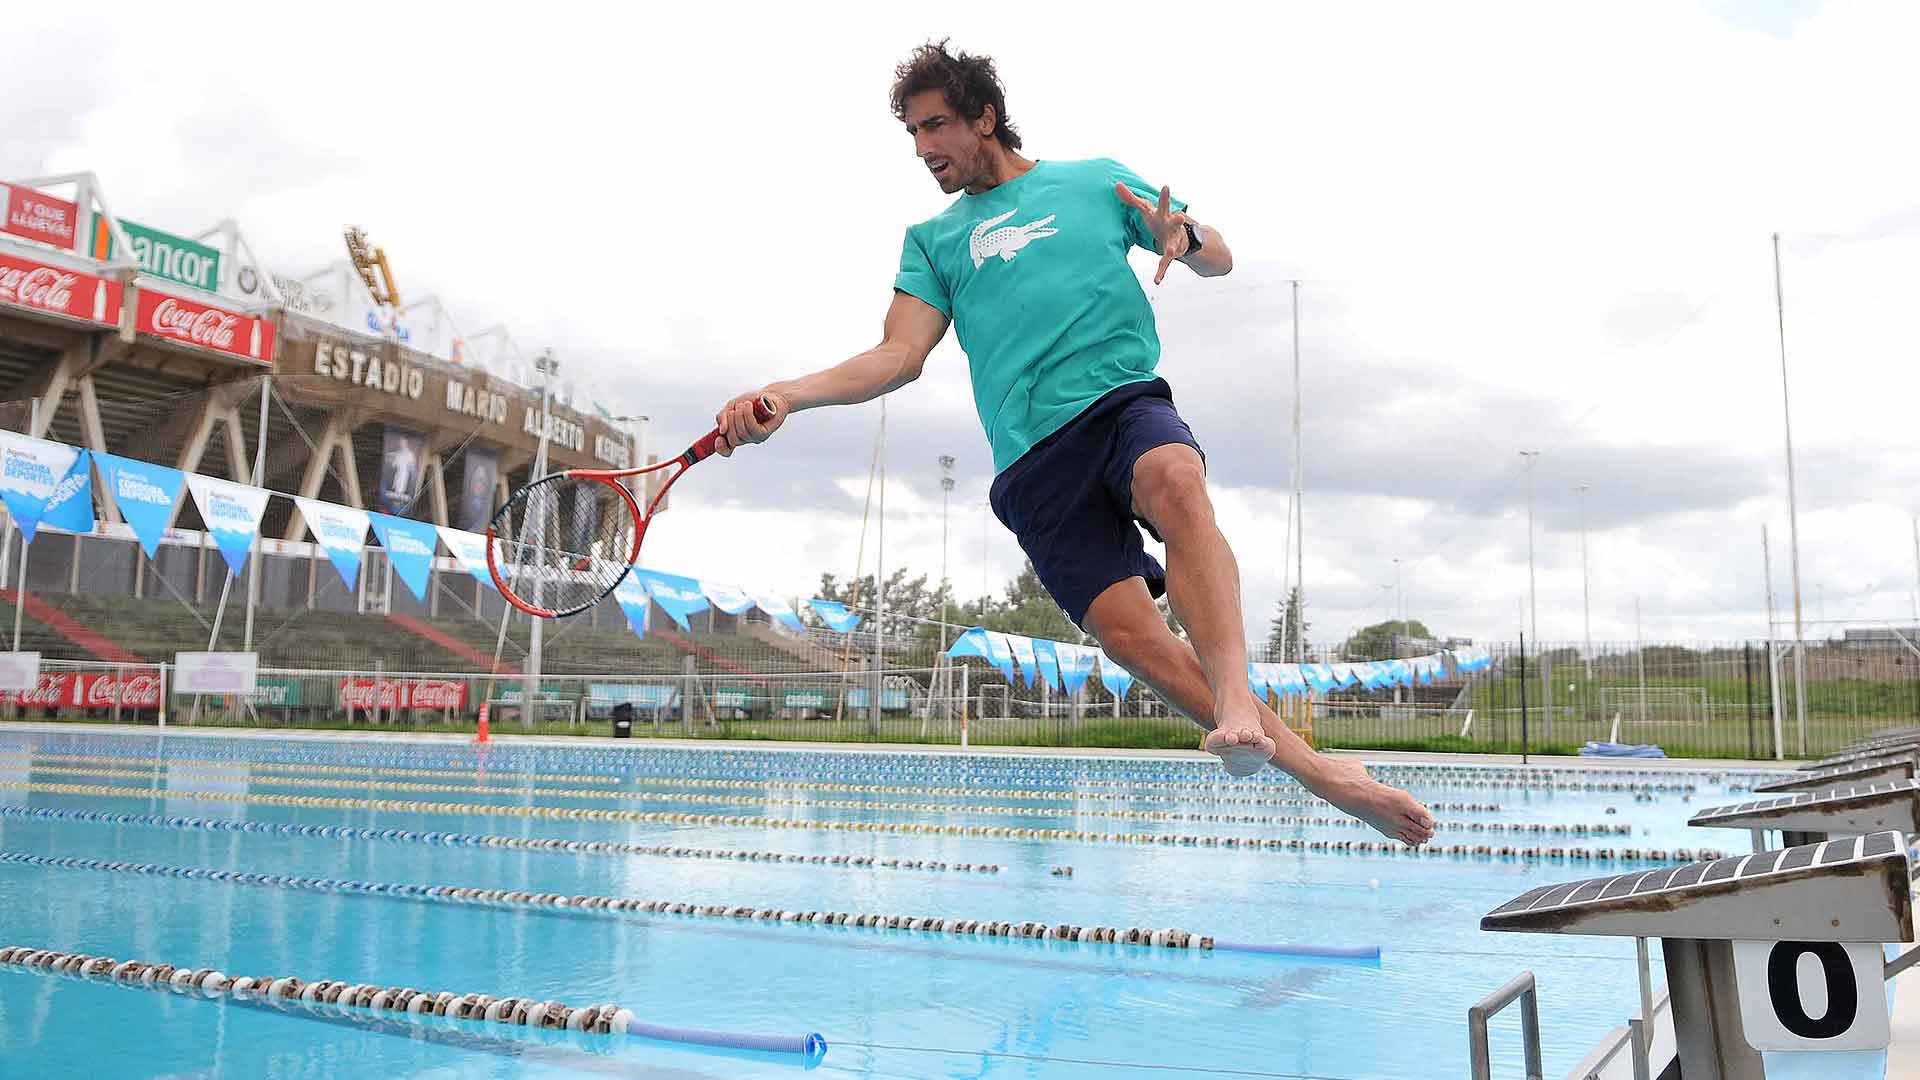 Cuevas dives into Cordoba pool